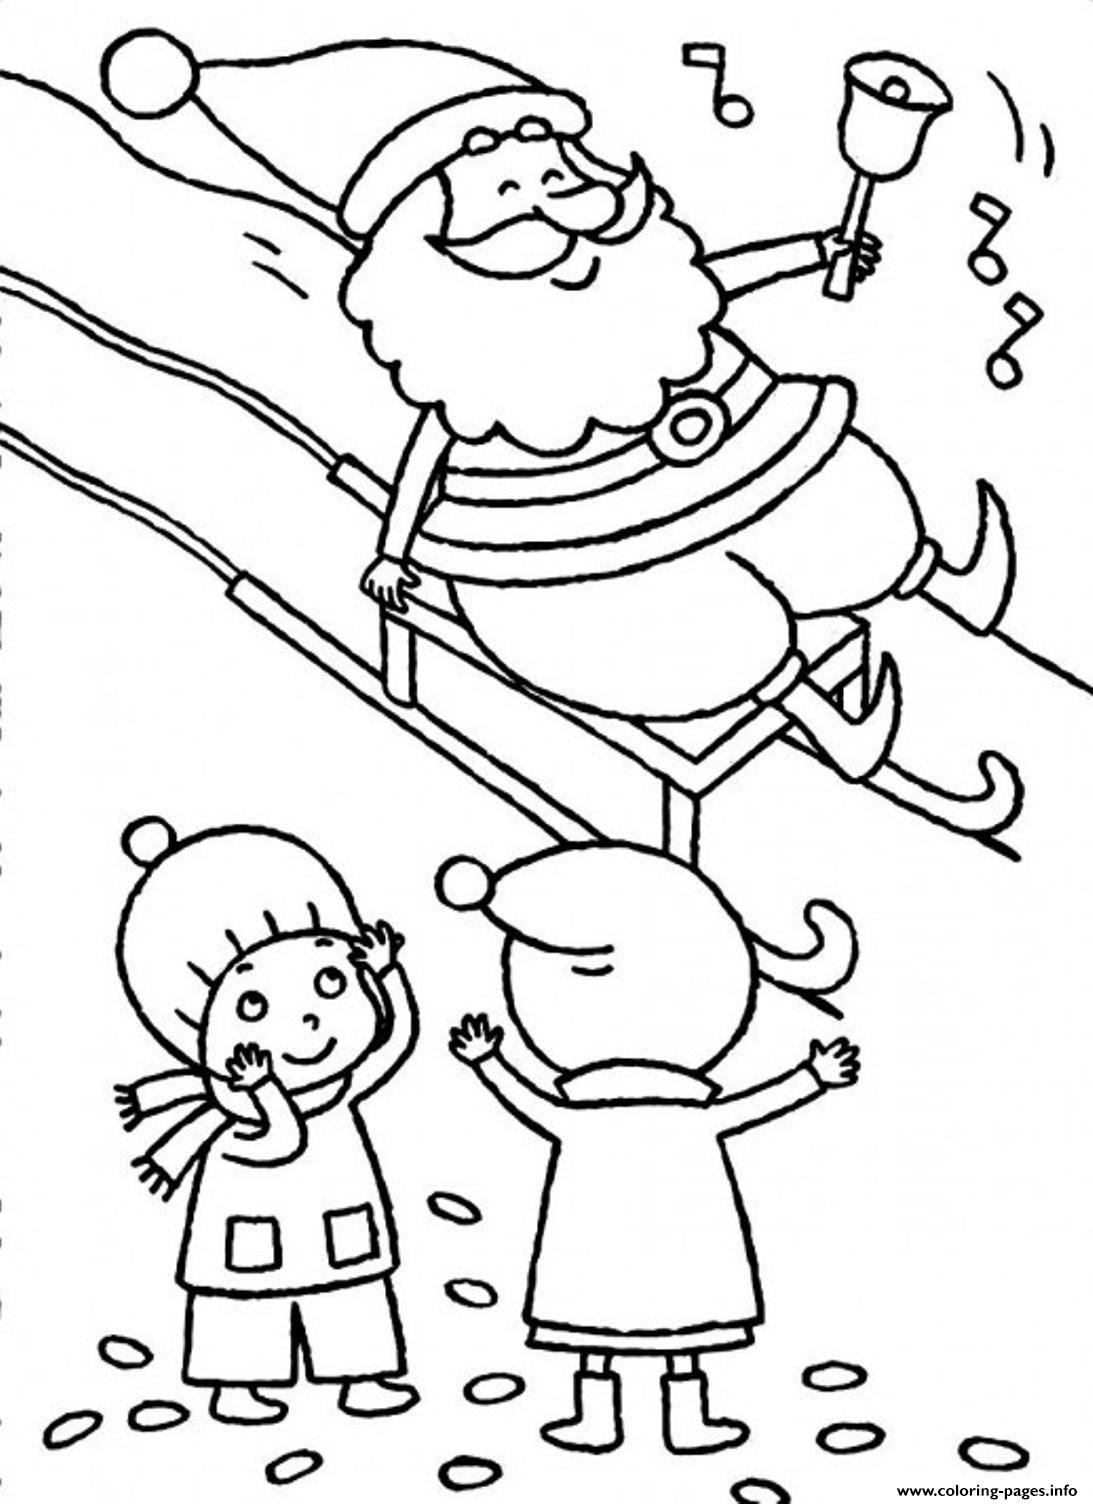 Free S For Christmas Santa And Kidse3f4 coloring pages